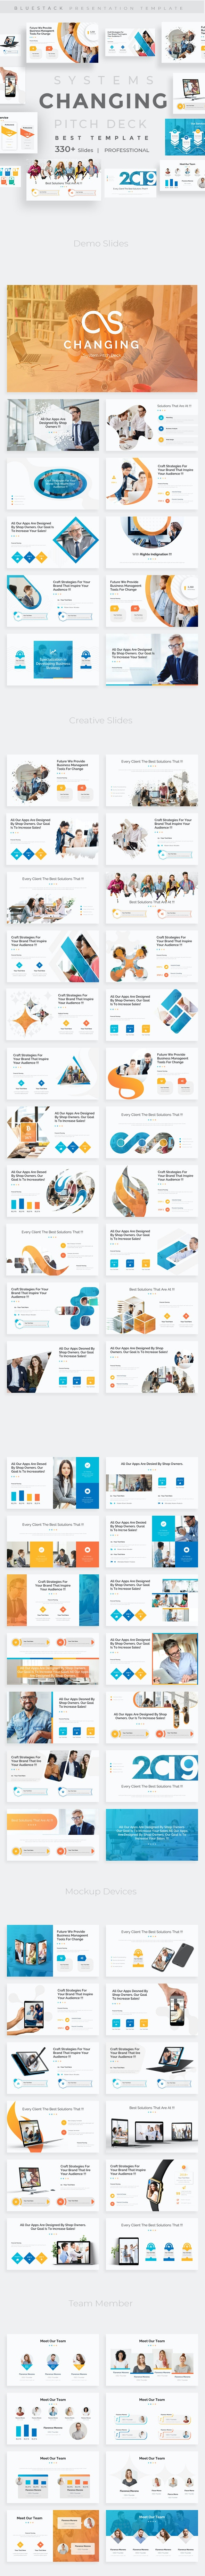 Changing Systems Pitch Deck Powerpoint Template - Business PowerPoint Templates